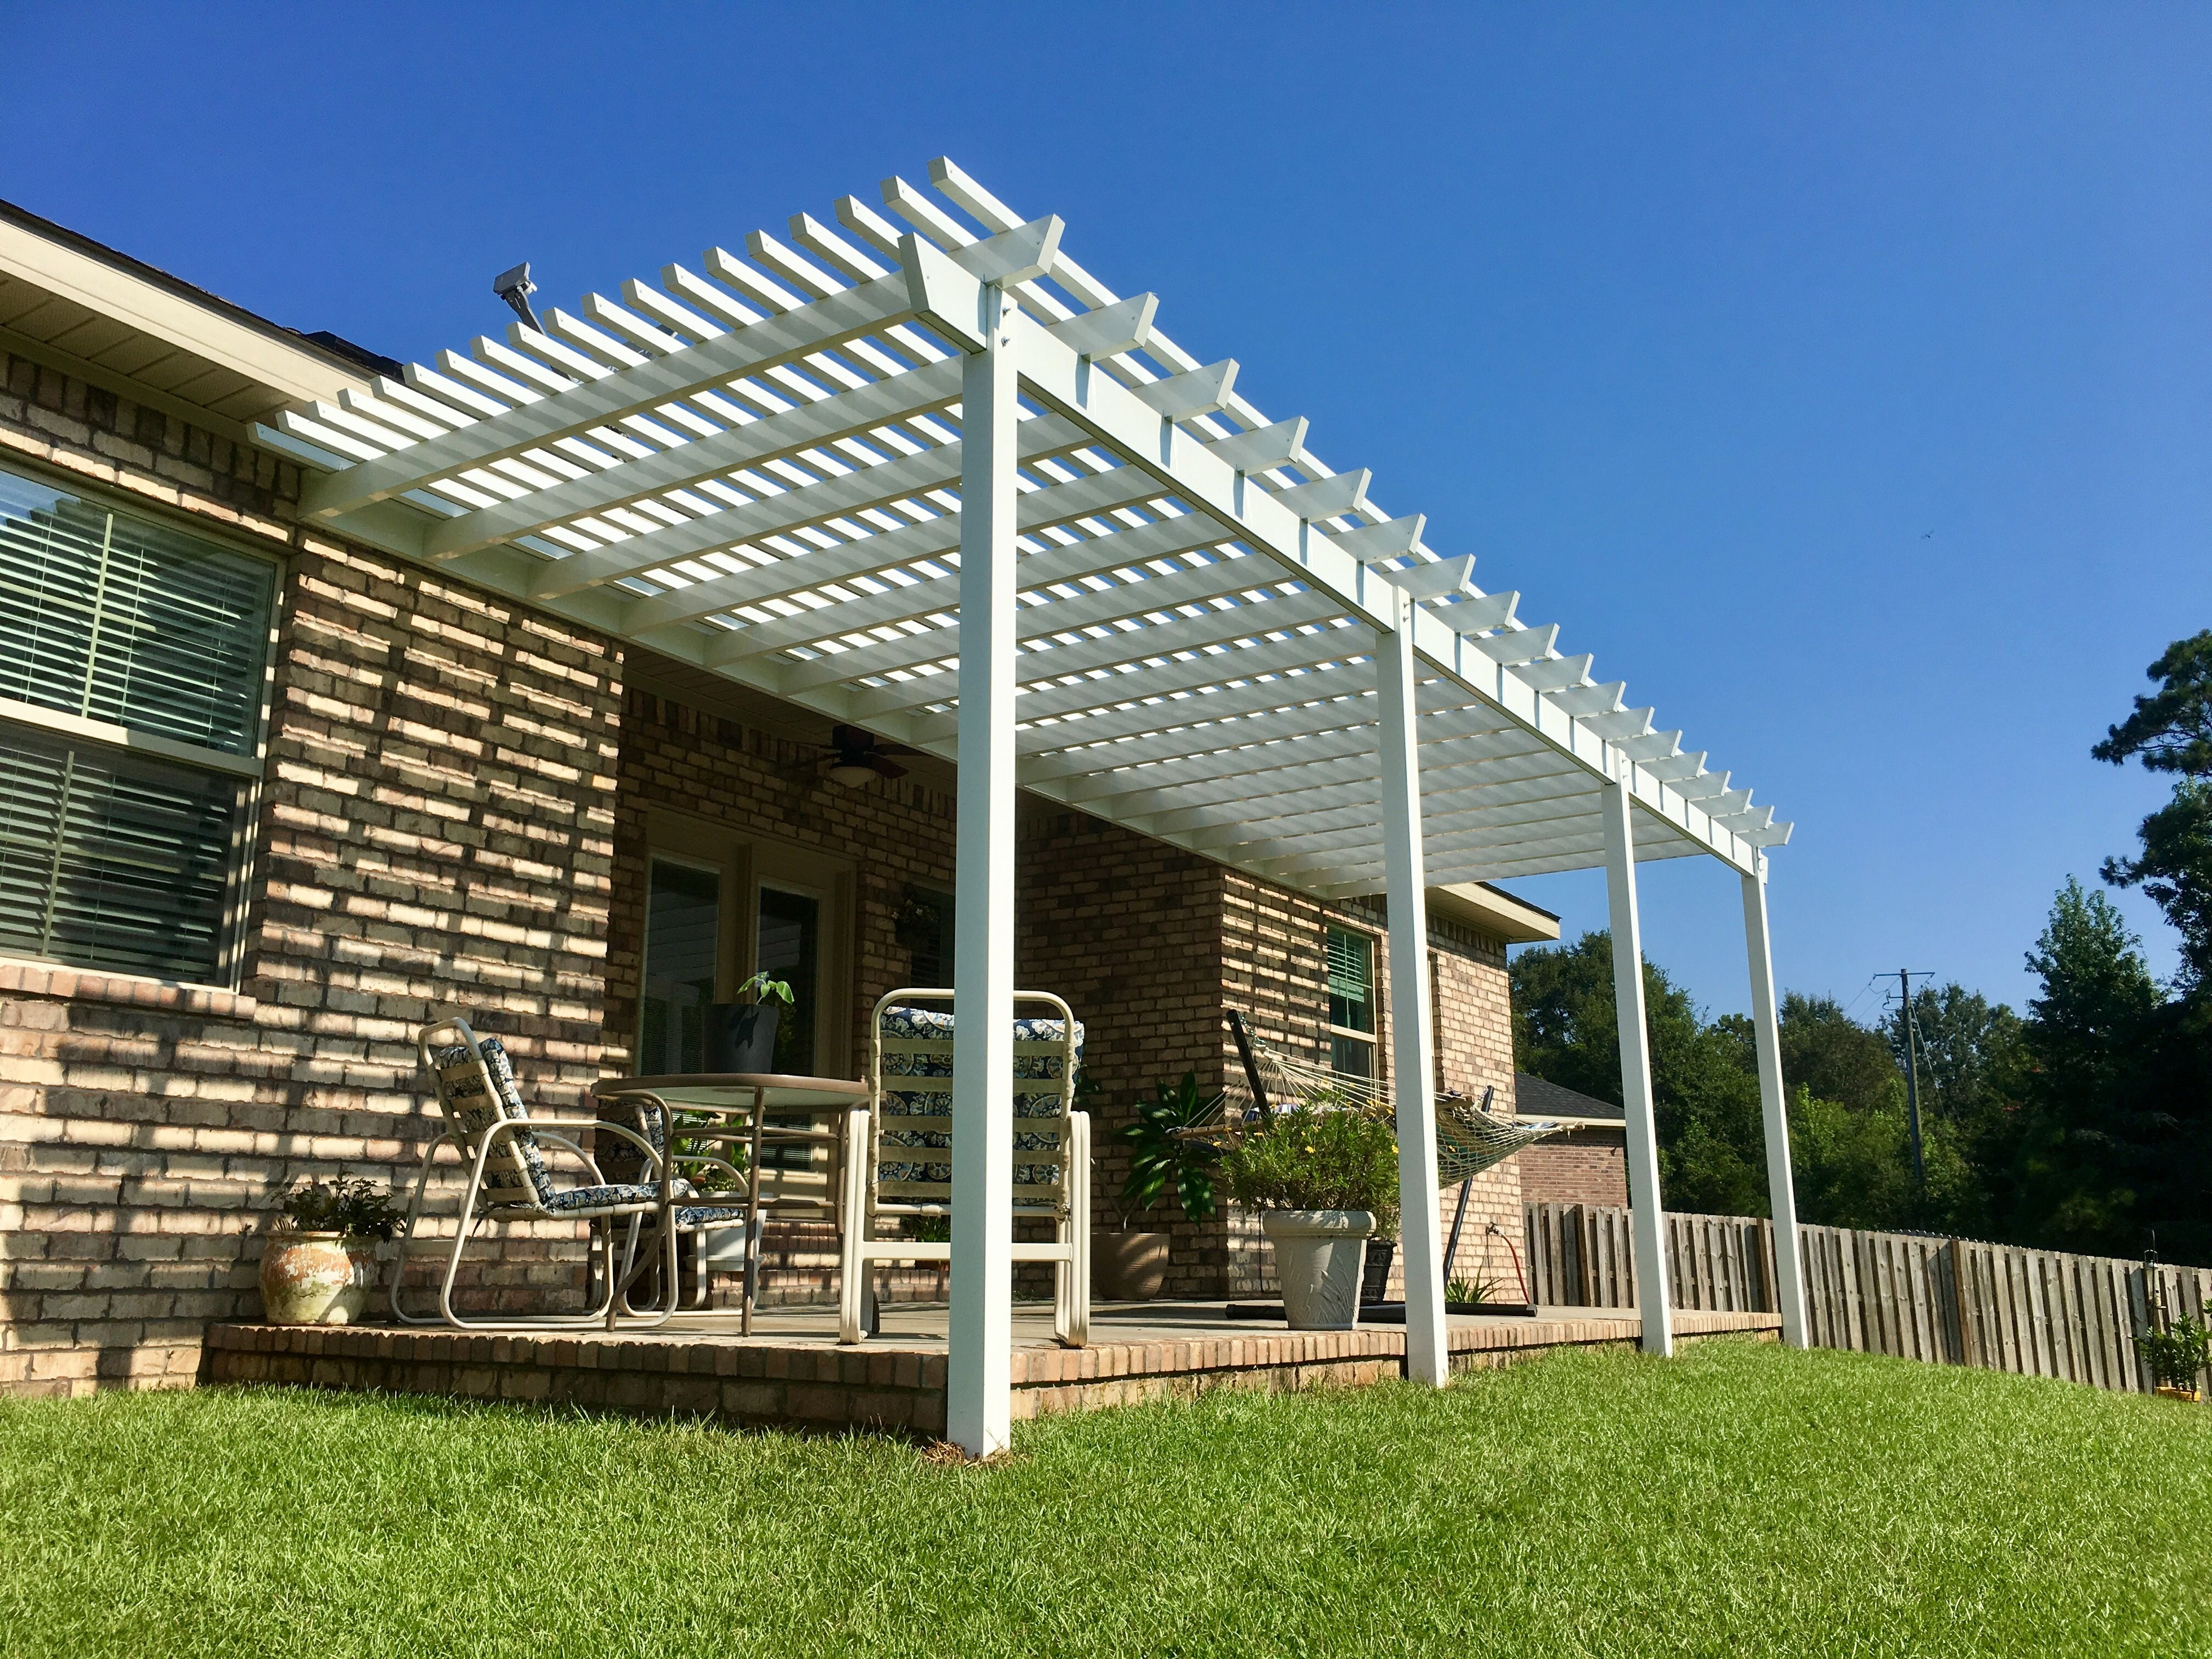 Pin By Jack Ray Siding On Outstanding Aluminum Covers Aluminum Patio Covers Aluminum Patio Covered Patio